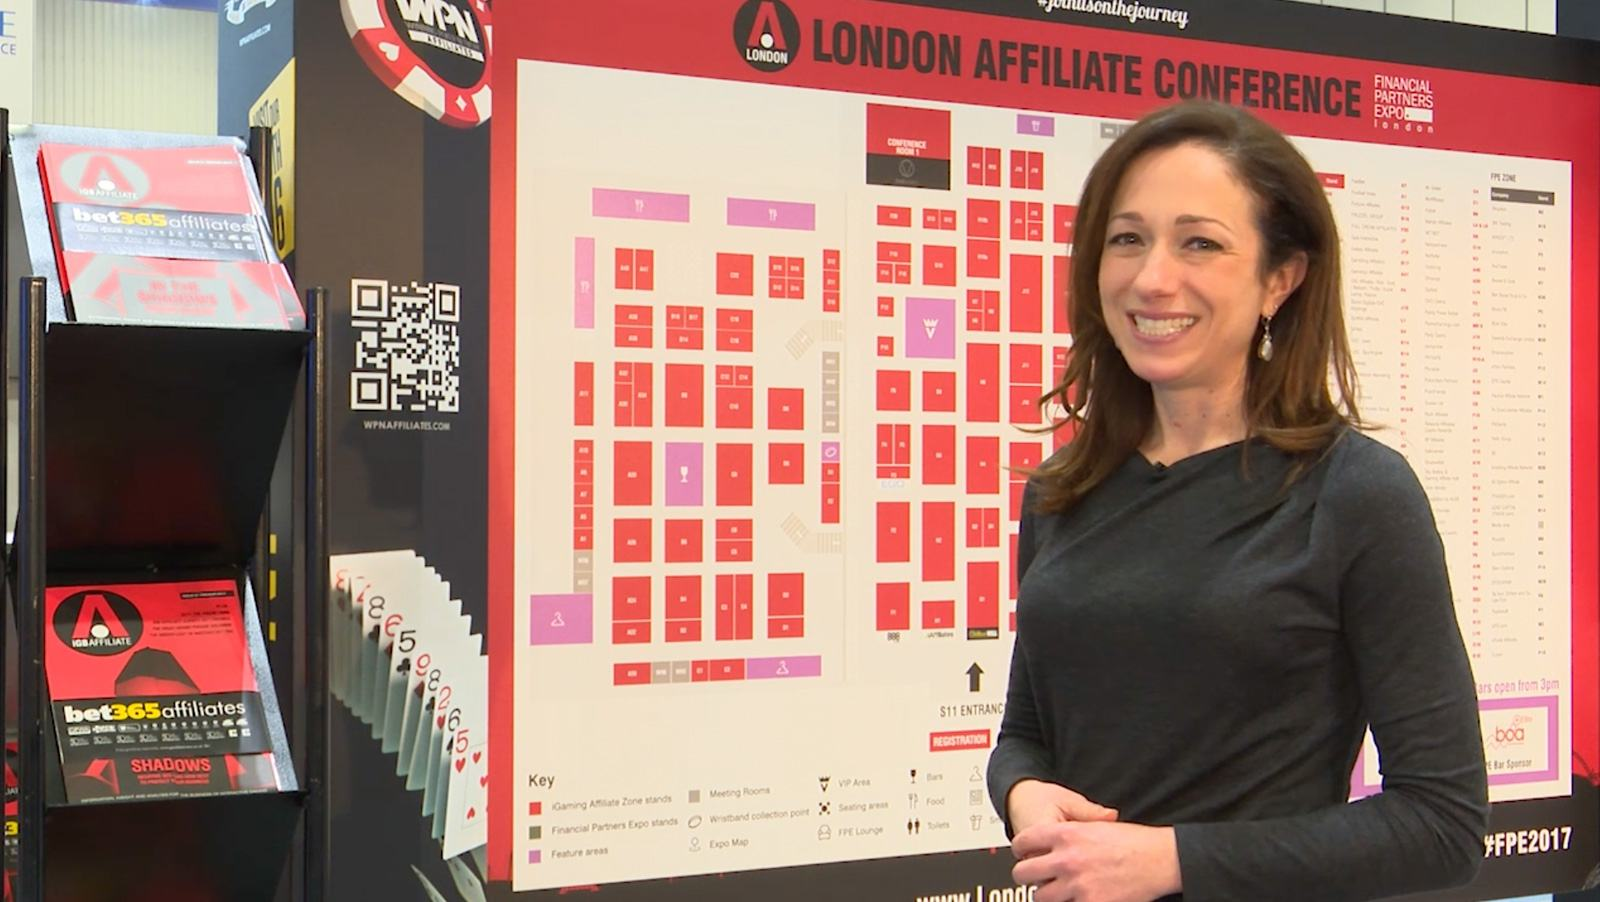 London Affiliate Conference 2017 day 2 recap